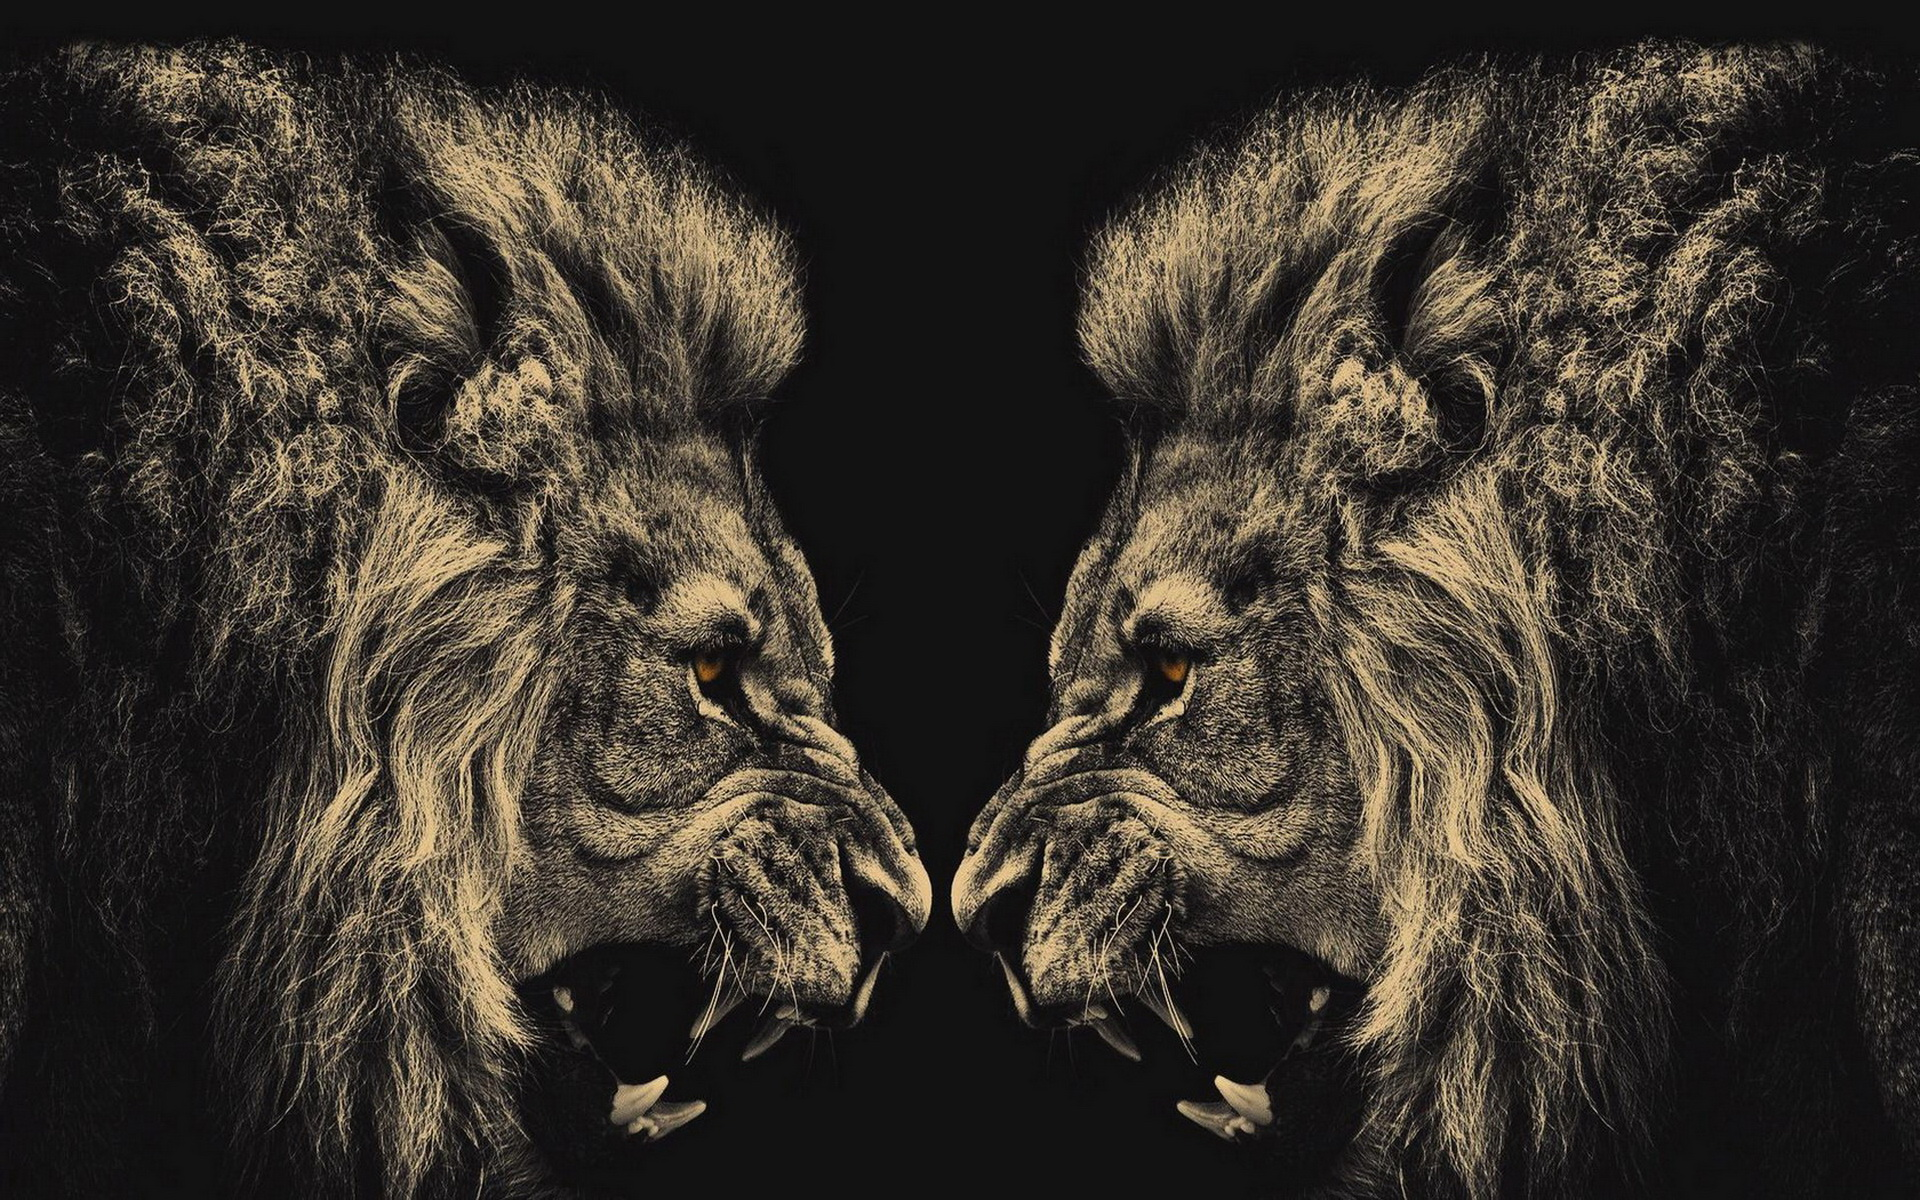 Lion Wallpaper Screensaver HD 10259 Wallpaper Cool Walldiskpaper 1920x1200